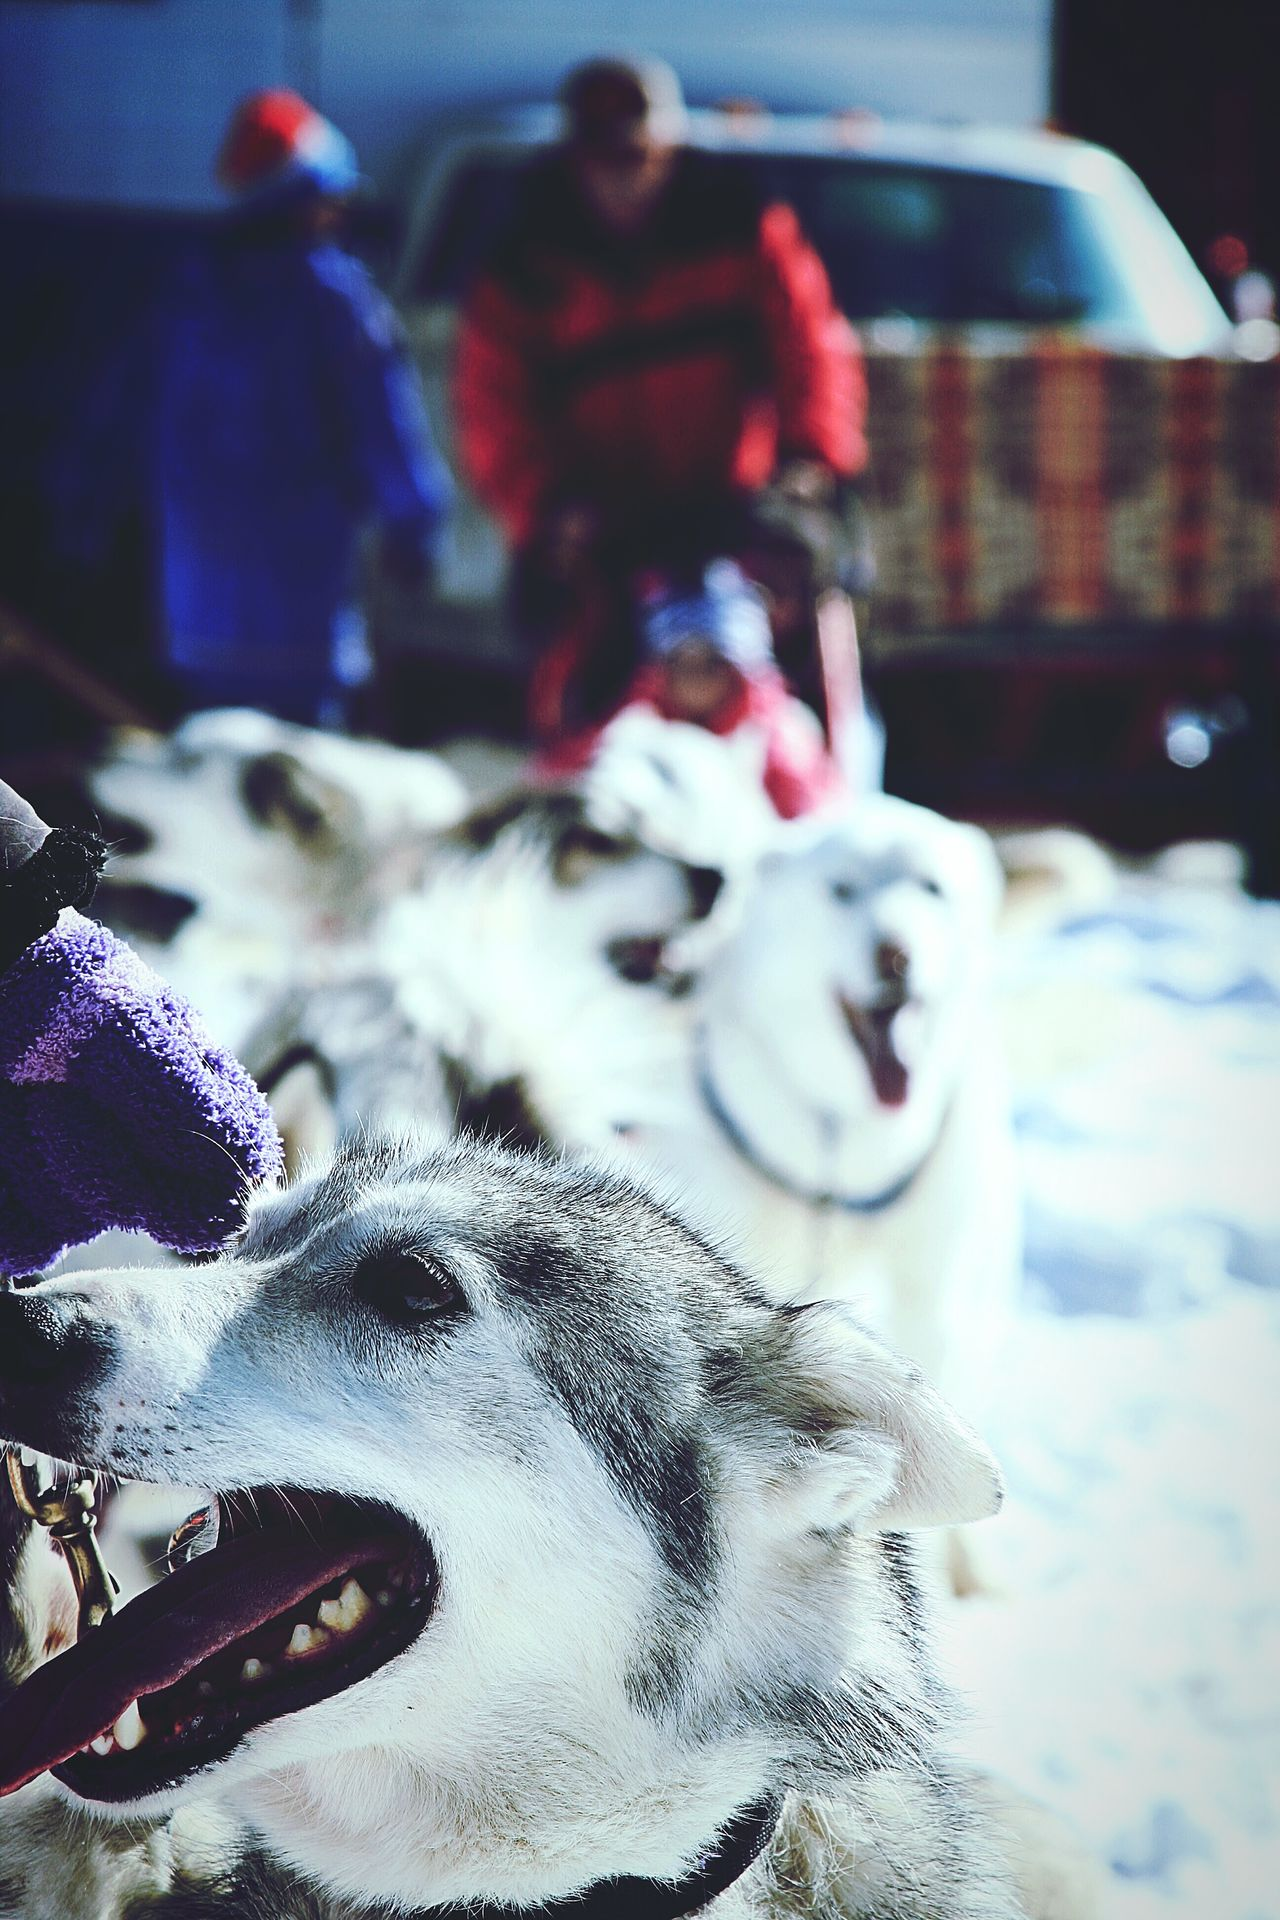 Snow Sports Winter Outdoors Sports Race People Day Live, Love, Laugh Random Acts Of Photography Sledding Enjoying Life Winter Portrait Child Beauty In Nature Sports Track Huskyphotography Huskylife Snowdogs